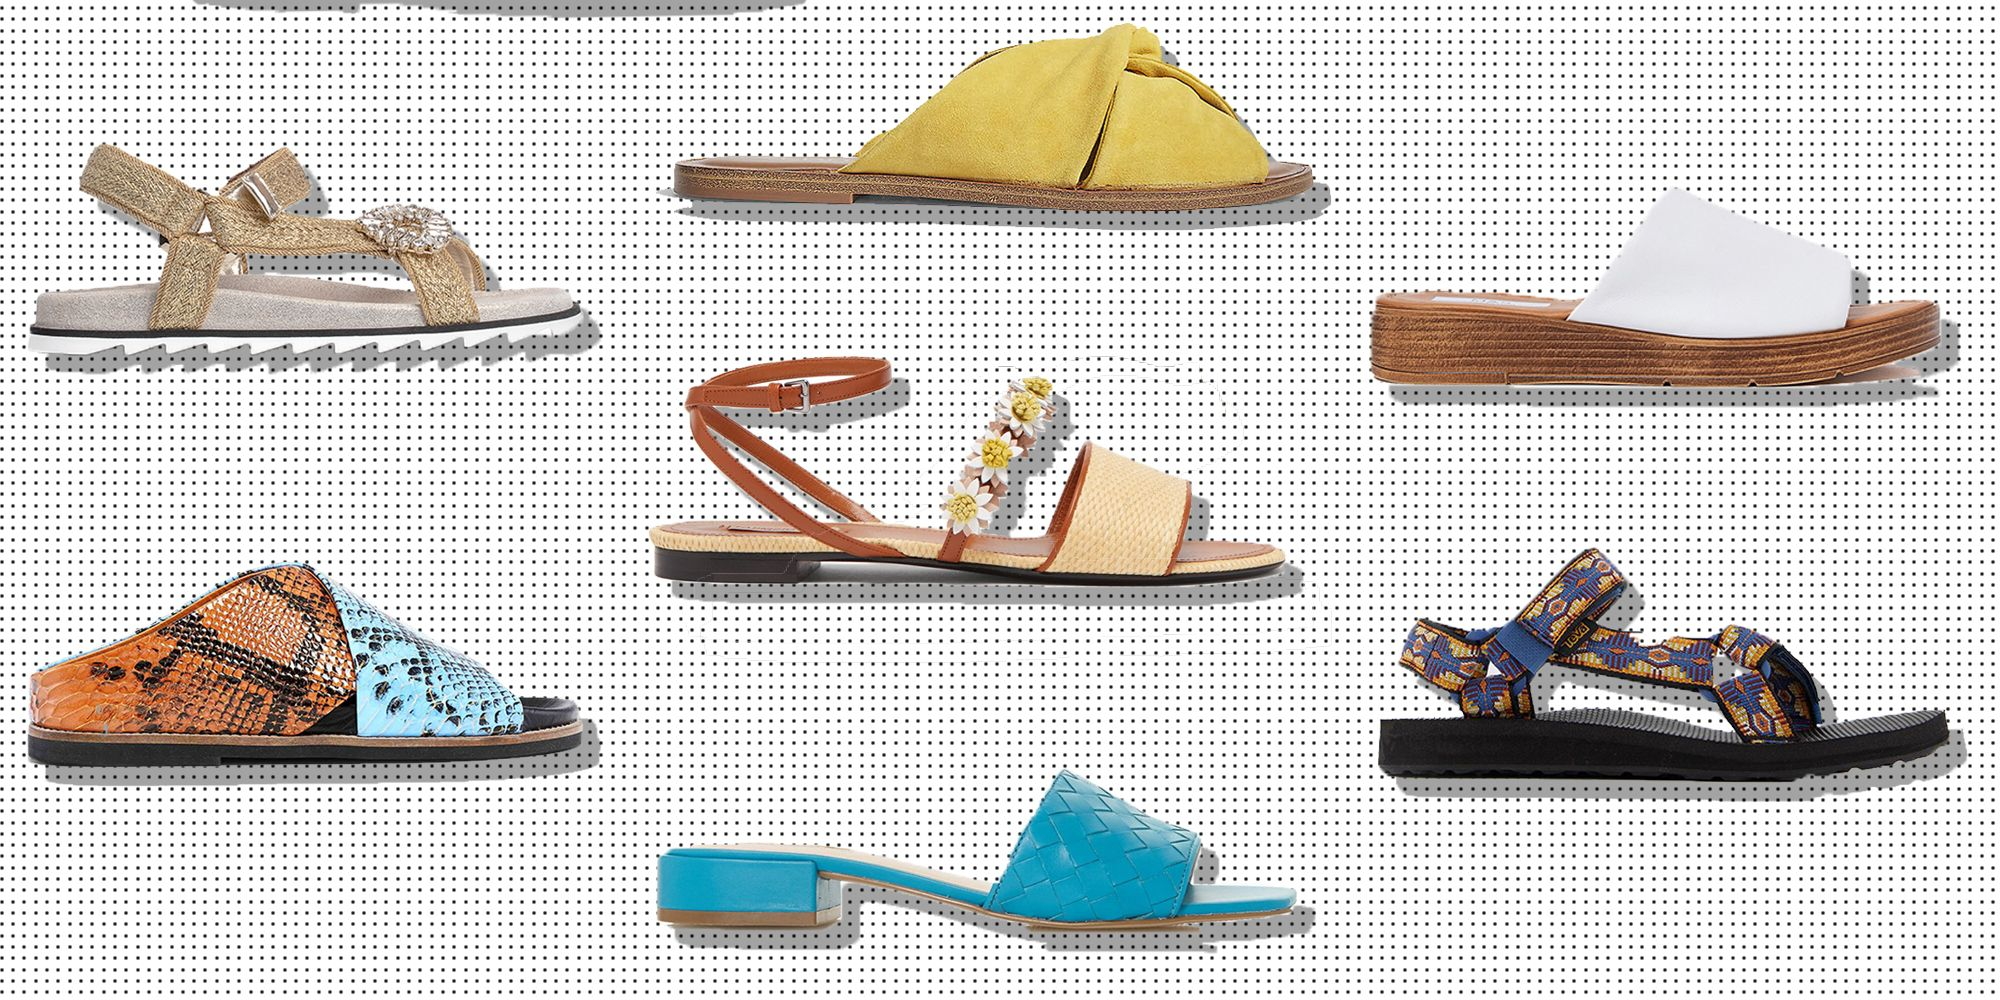 36 Pairs Of Sandals To Buy This Summer